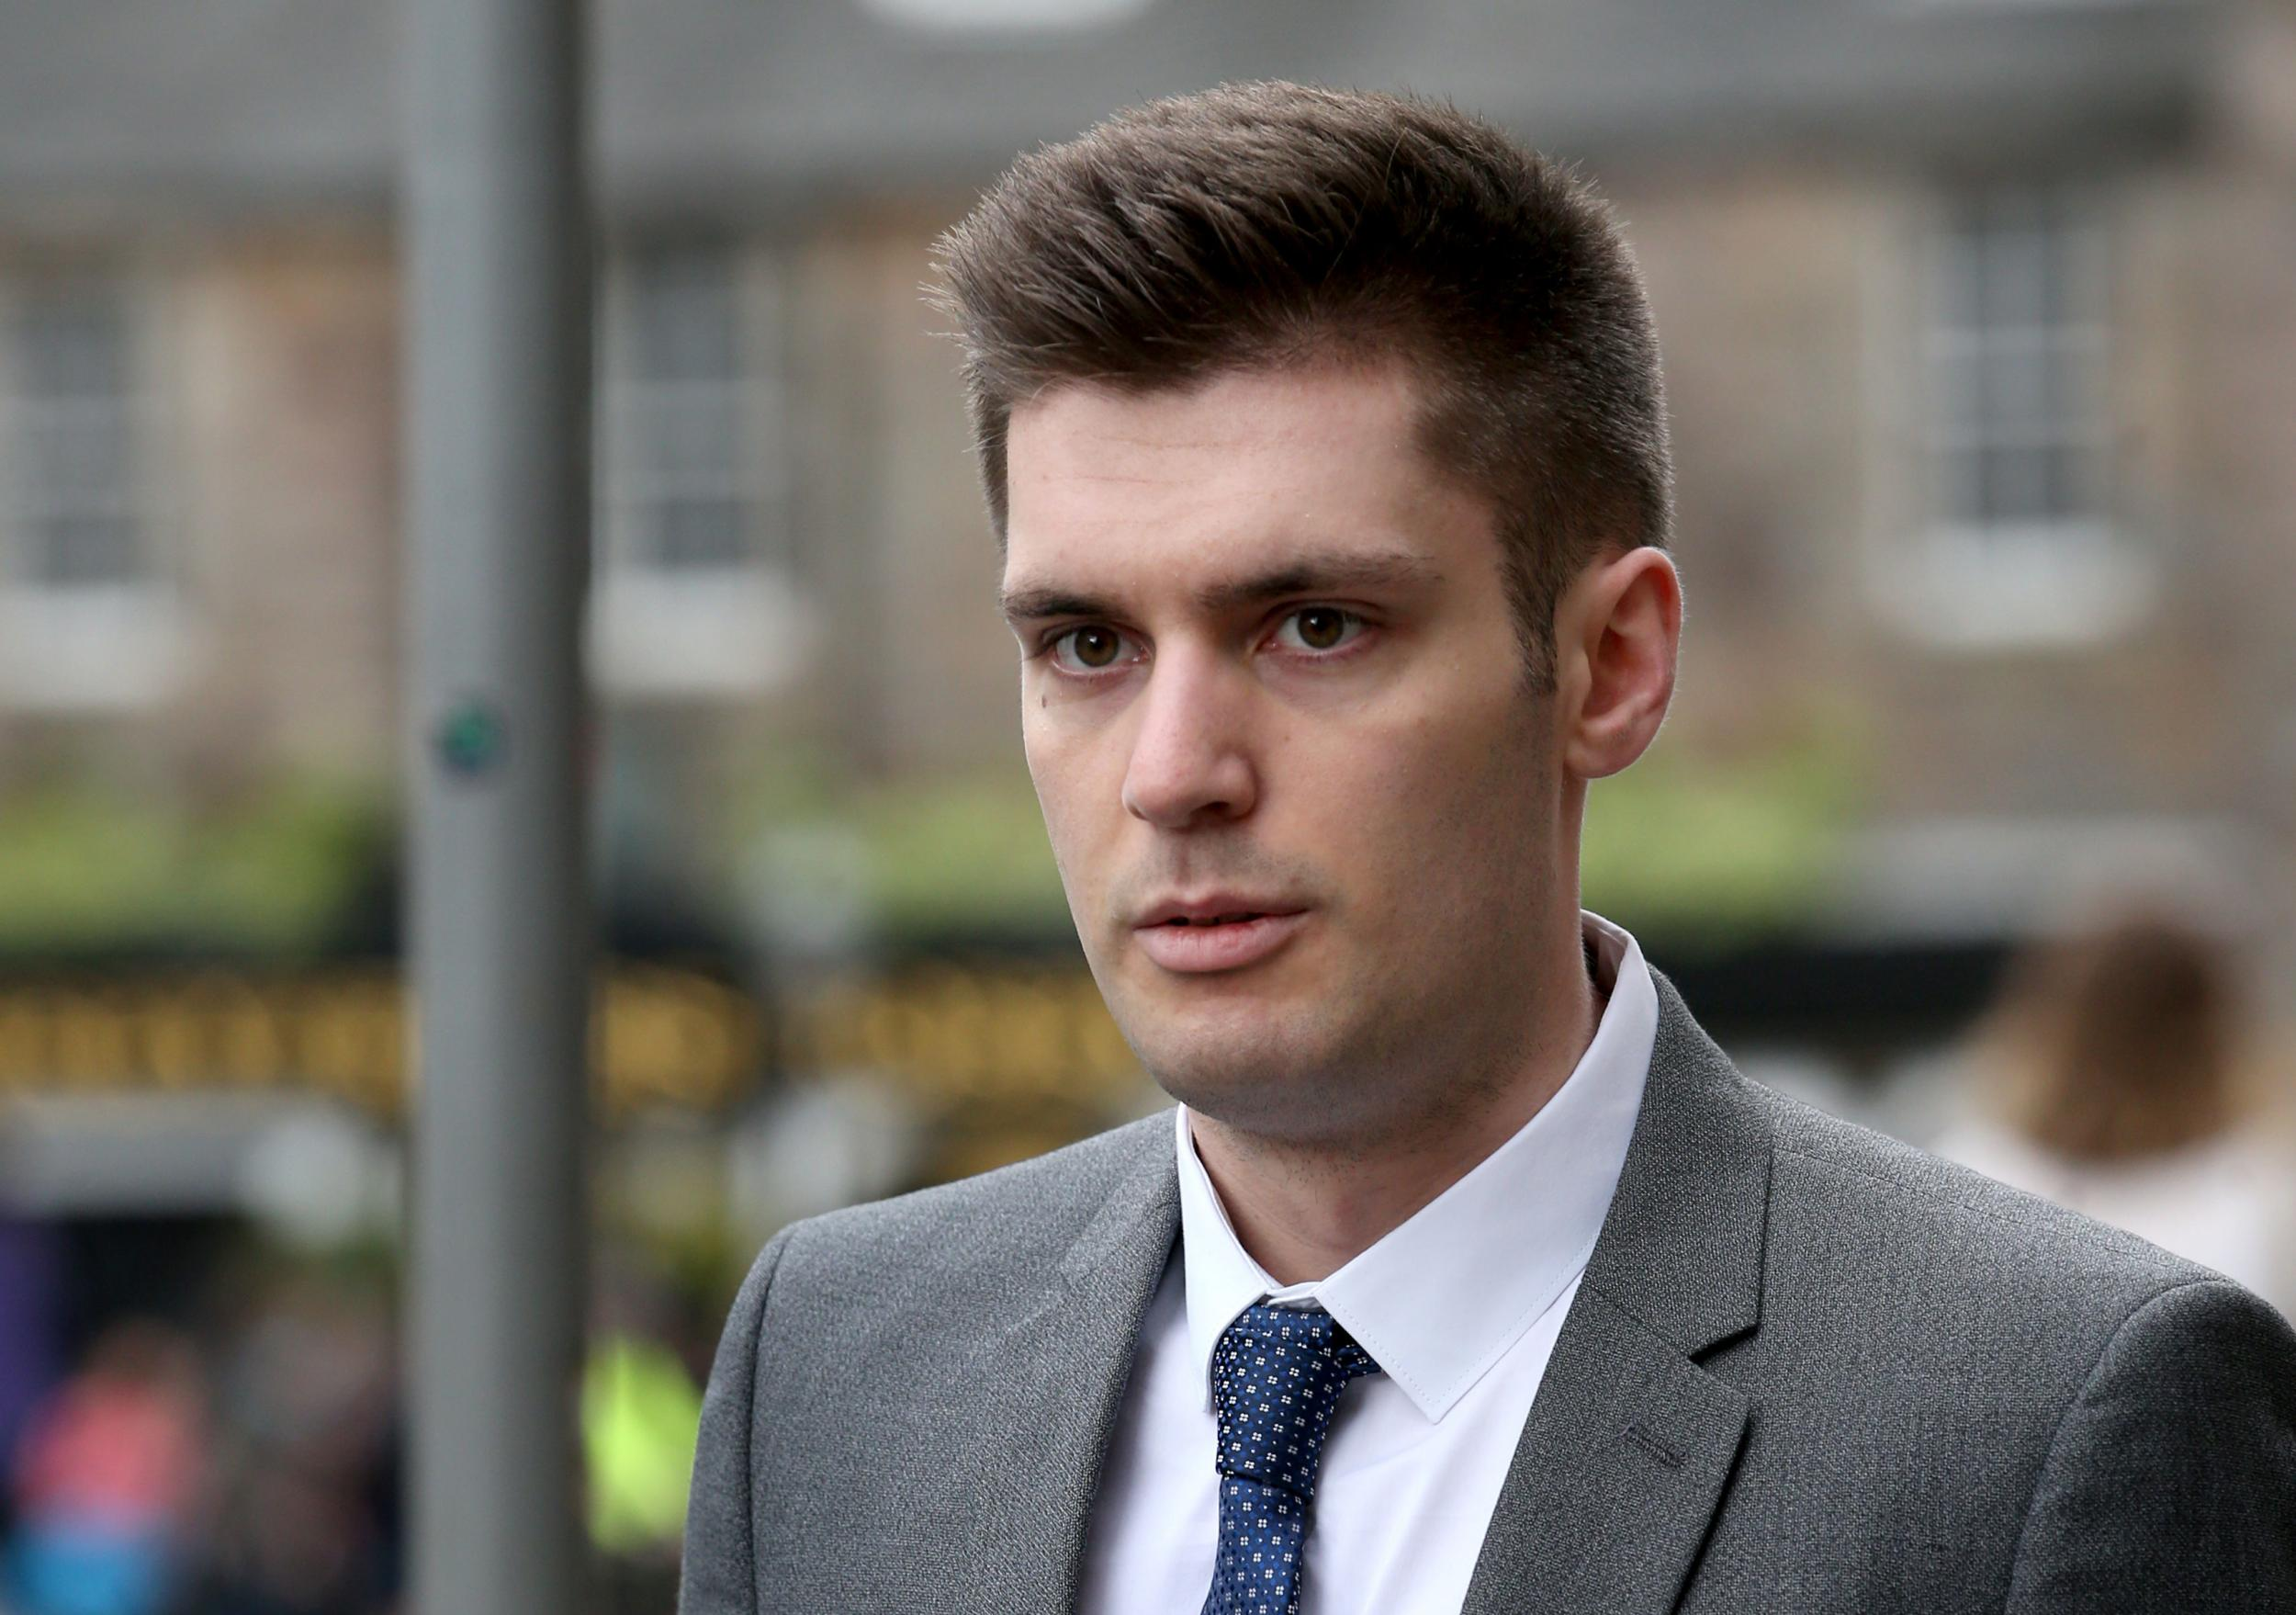 Woman suing man cleared of raping her 'thought she was going to die'